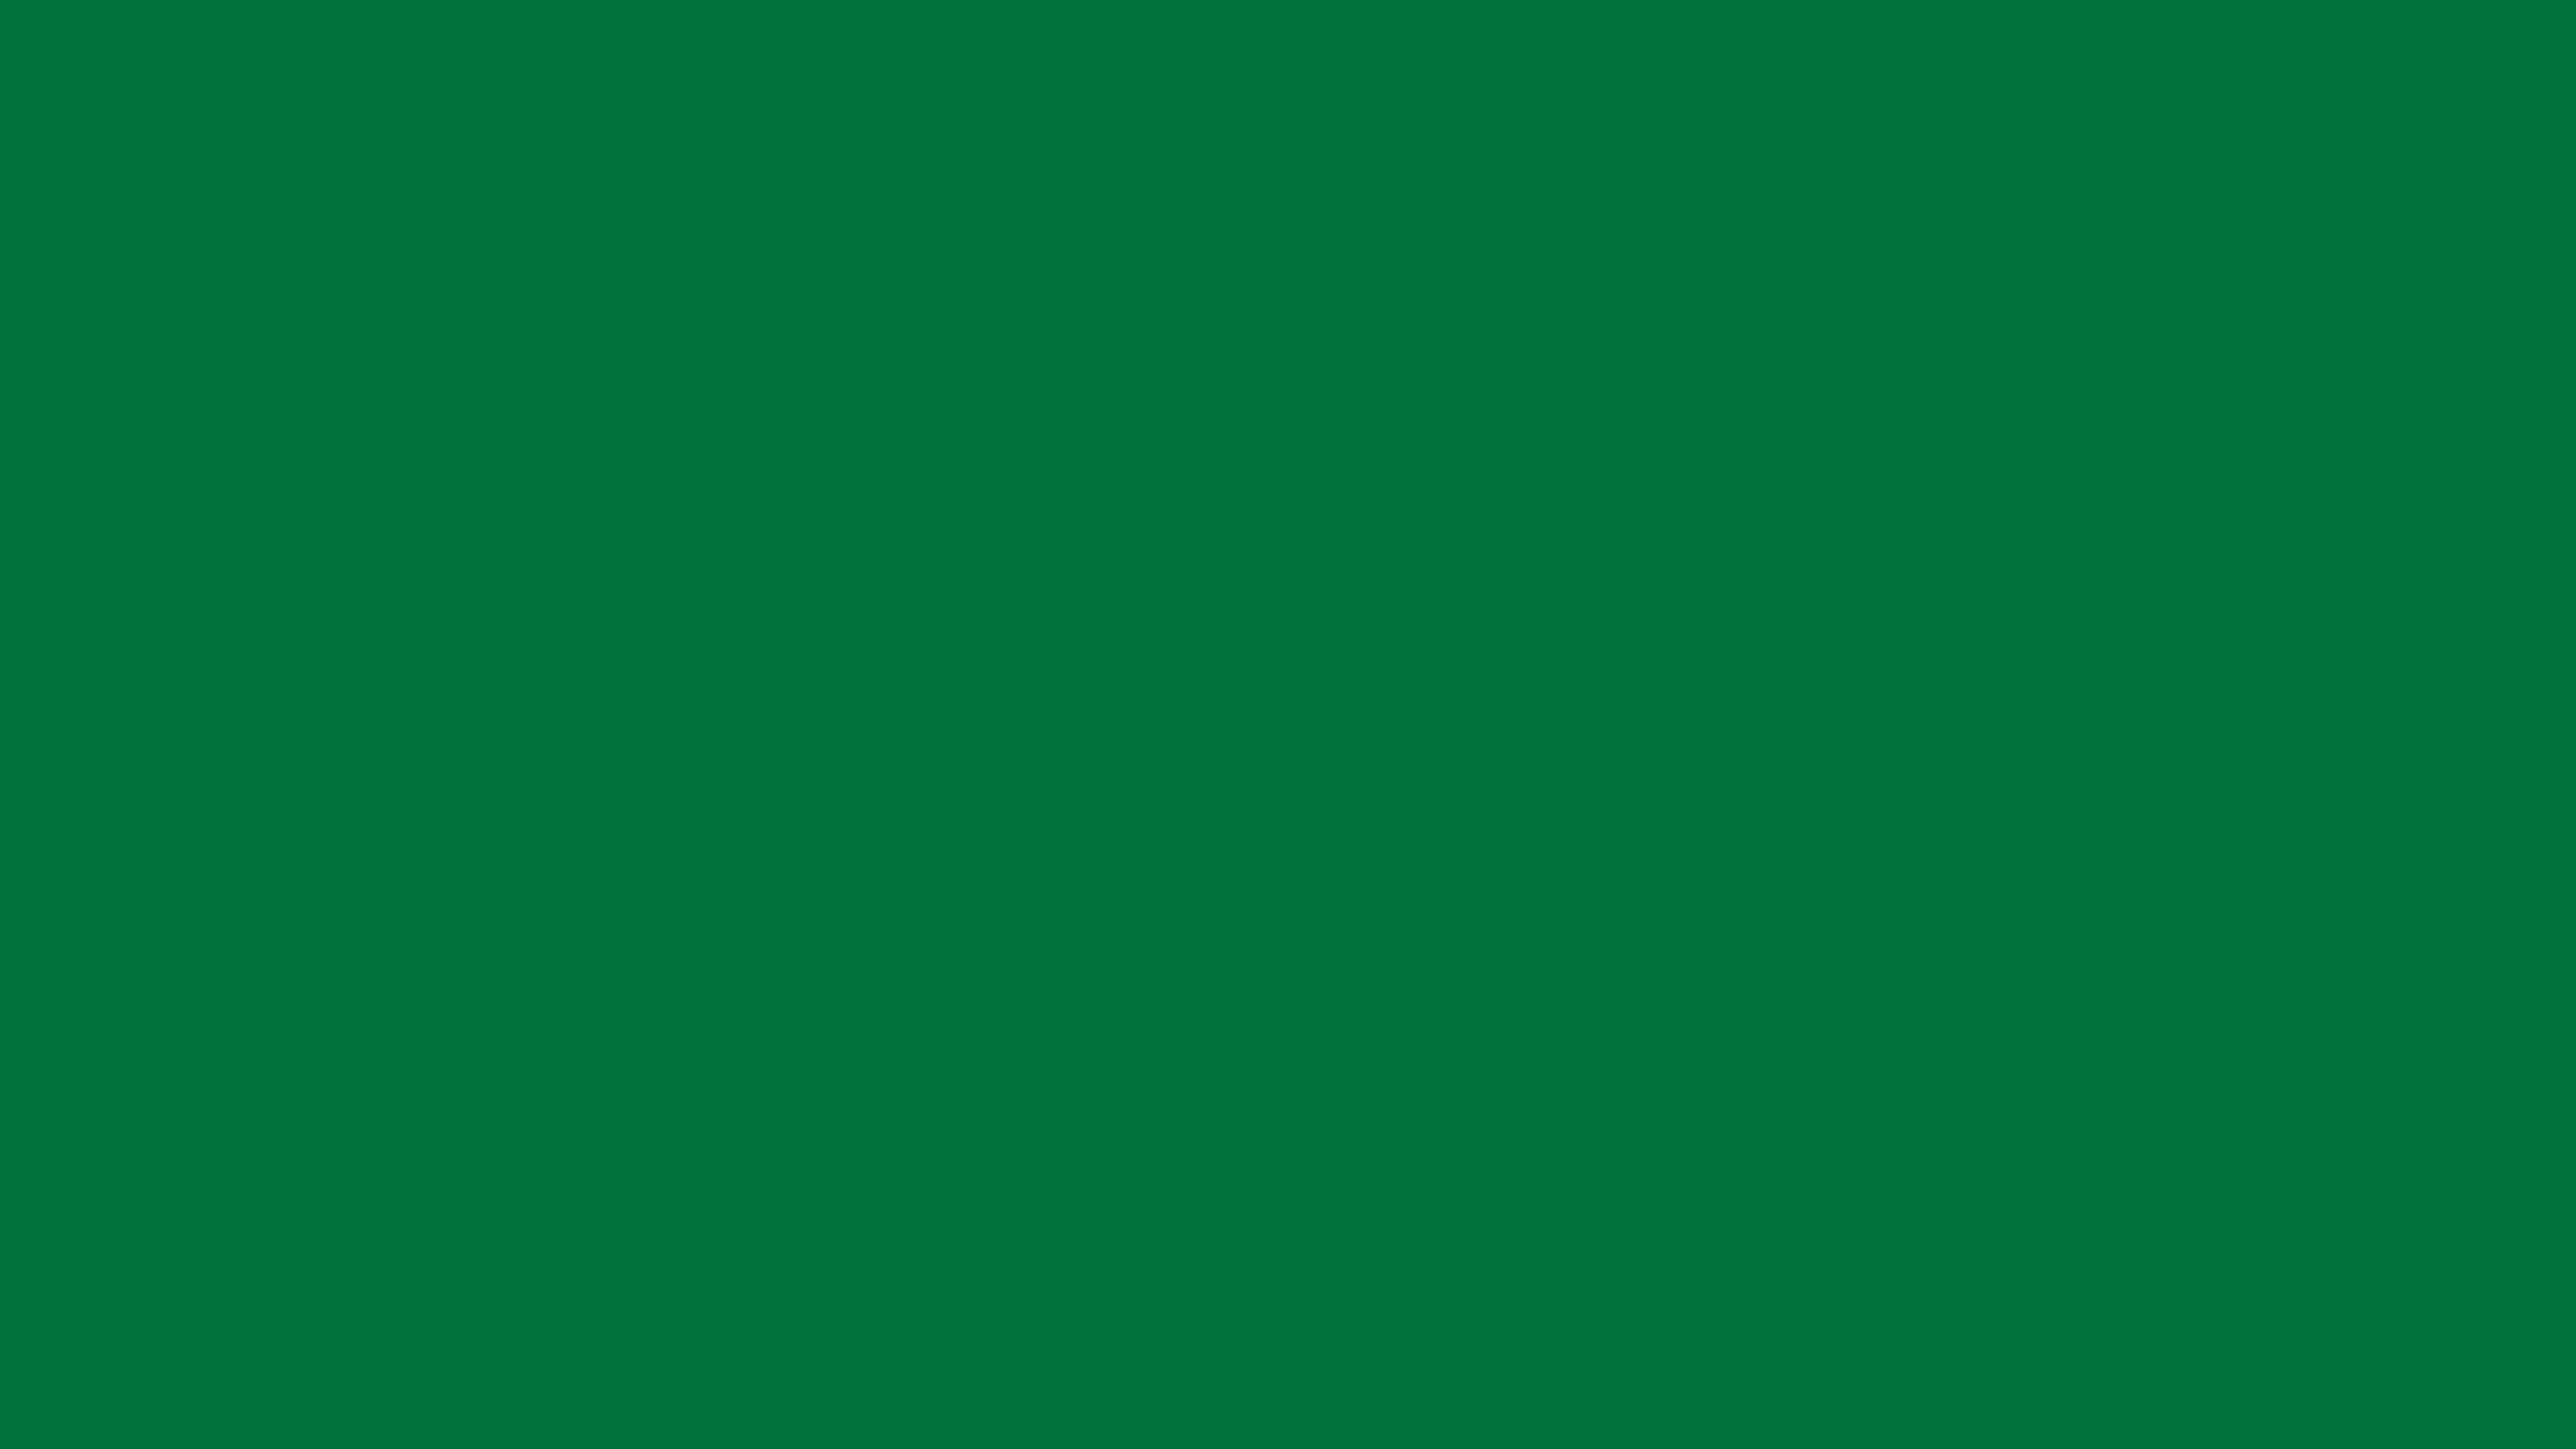 5120x2880 Dartmouth Green Solid Color Background